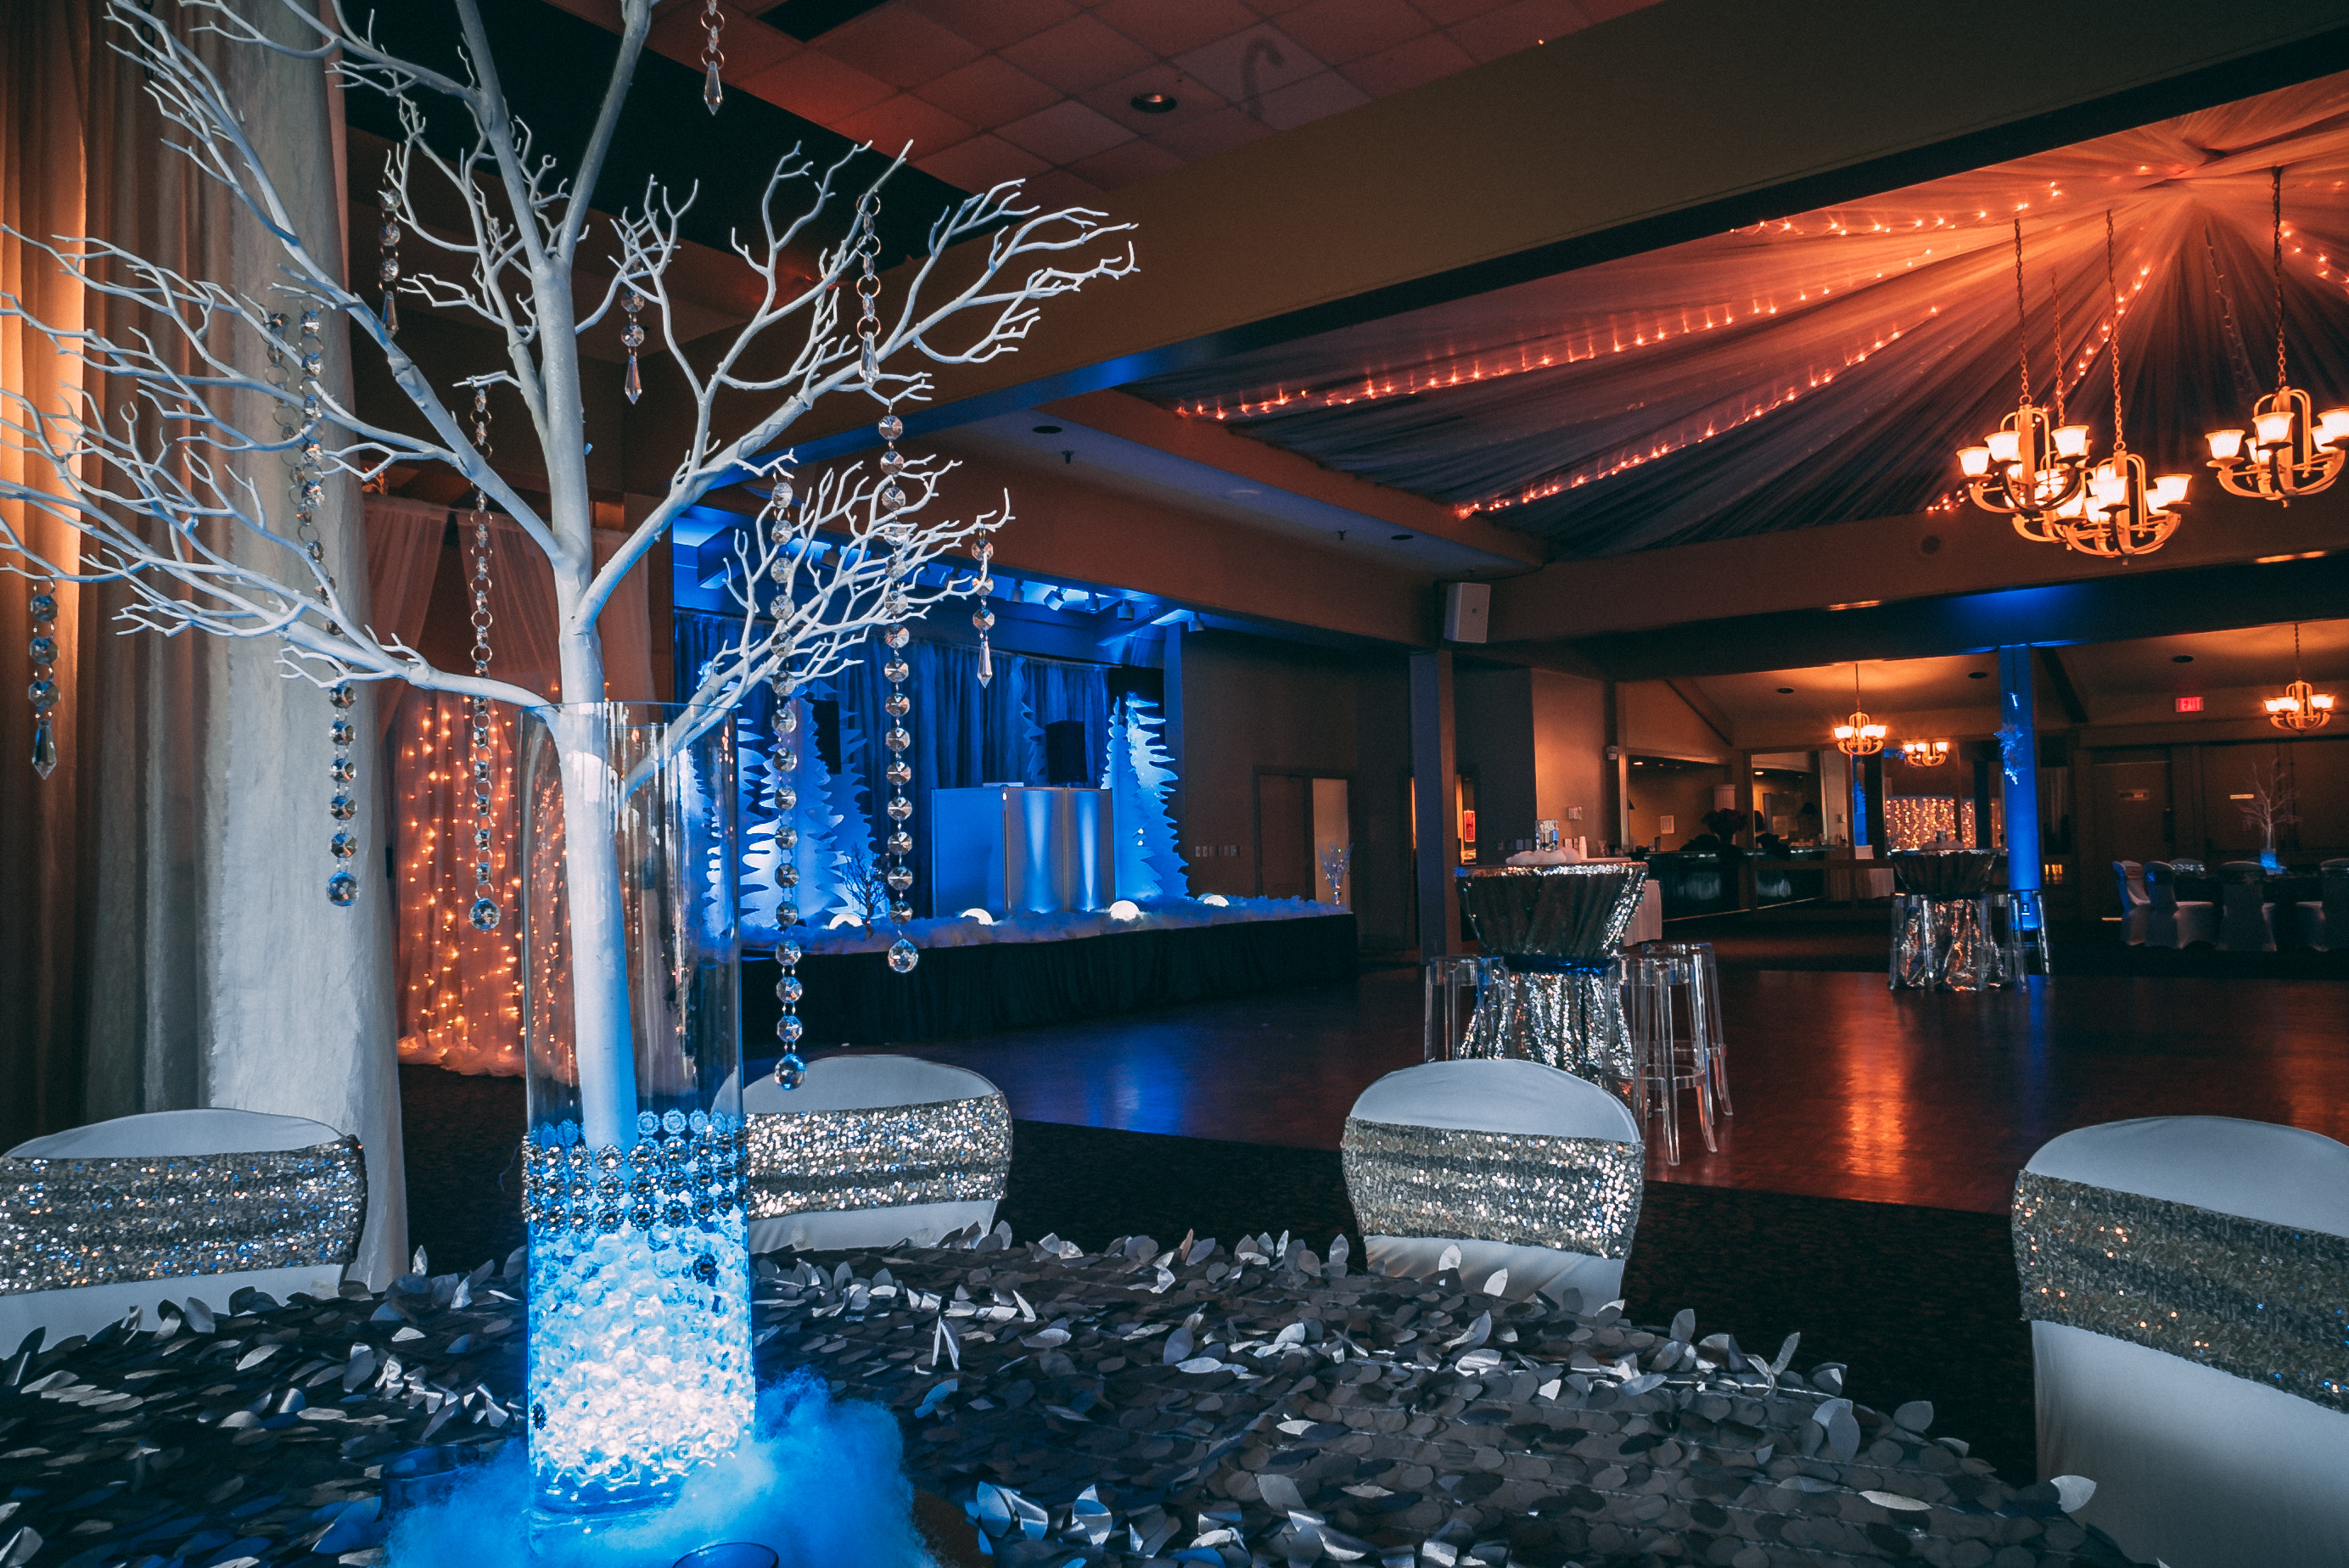 events_envents_winter_wonderland_corpora